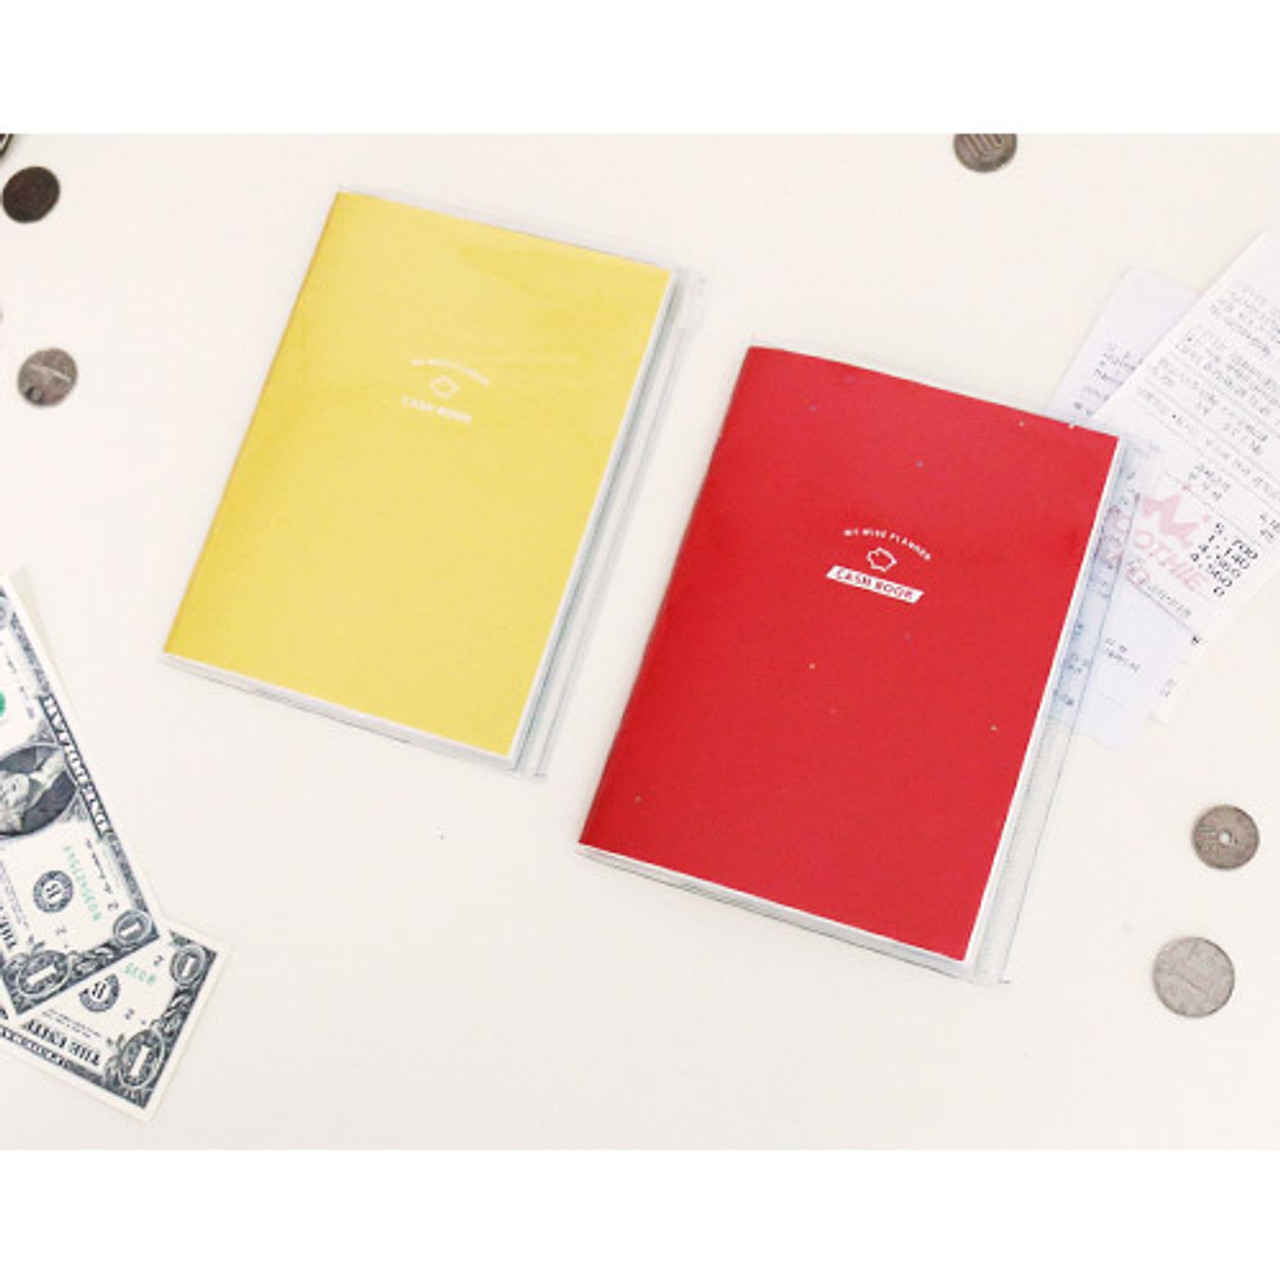 gyou my wise cash book planner